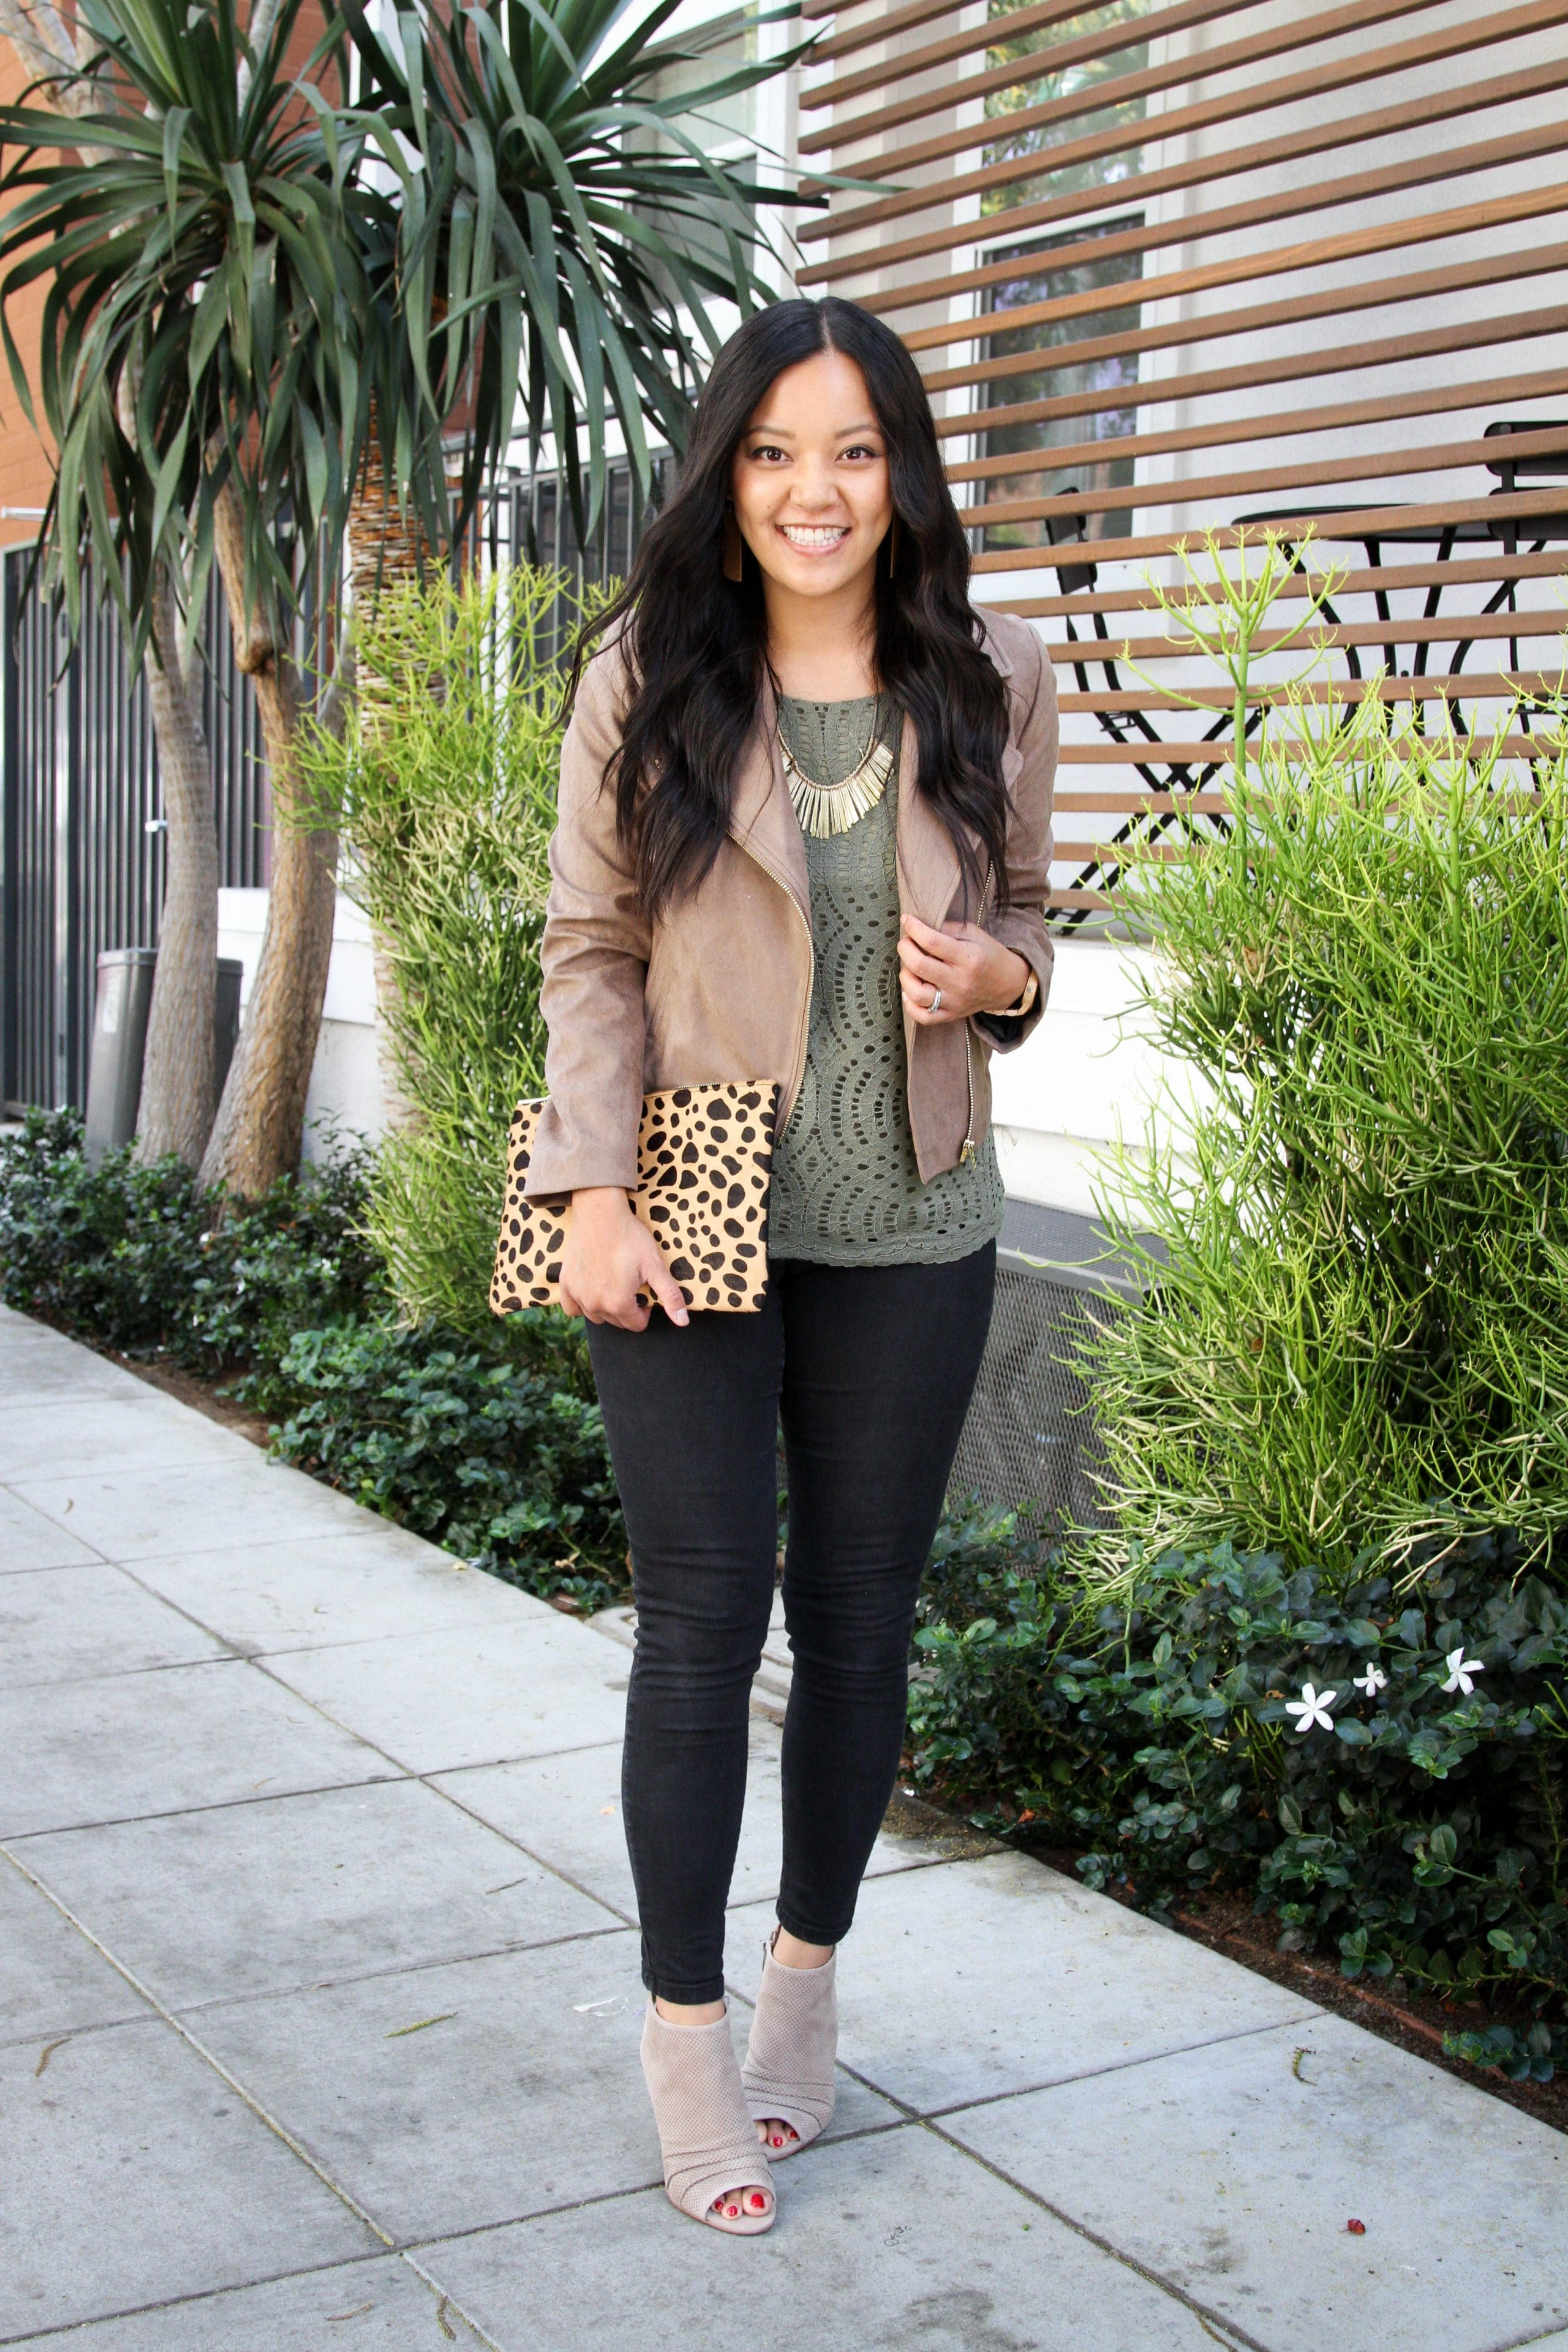 Olive Lace tee + Black Jeans + Moto Jacket + Heeled booties